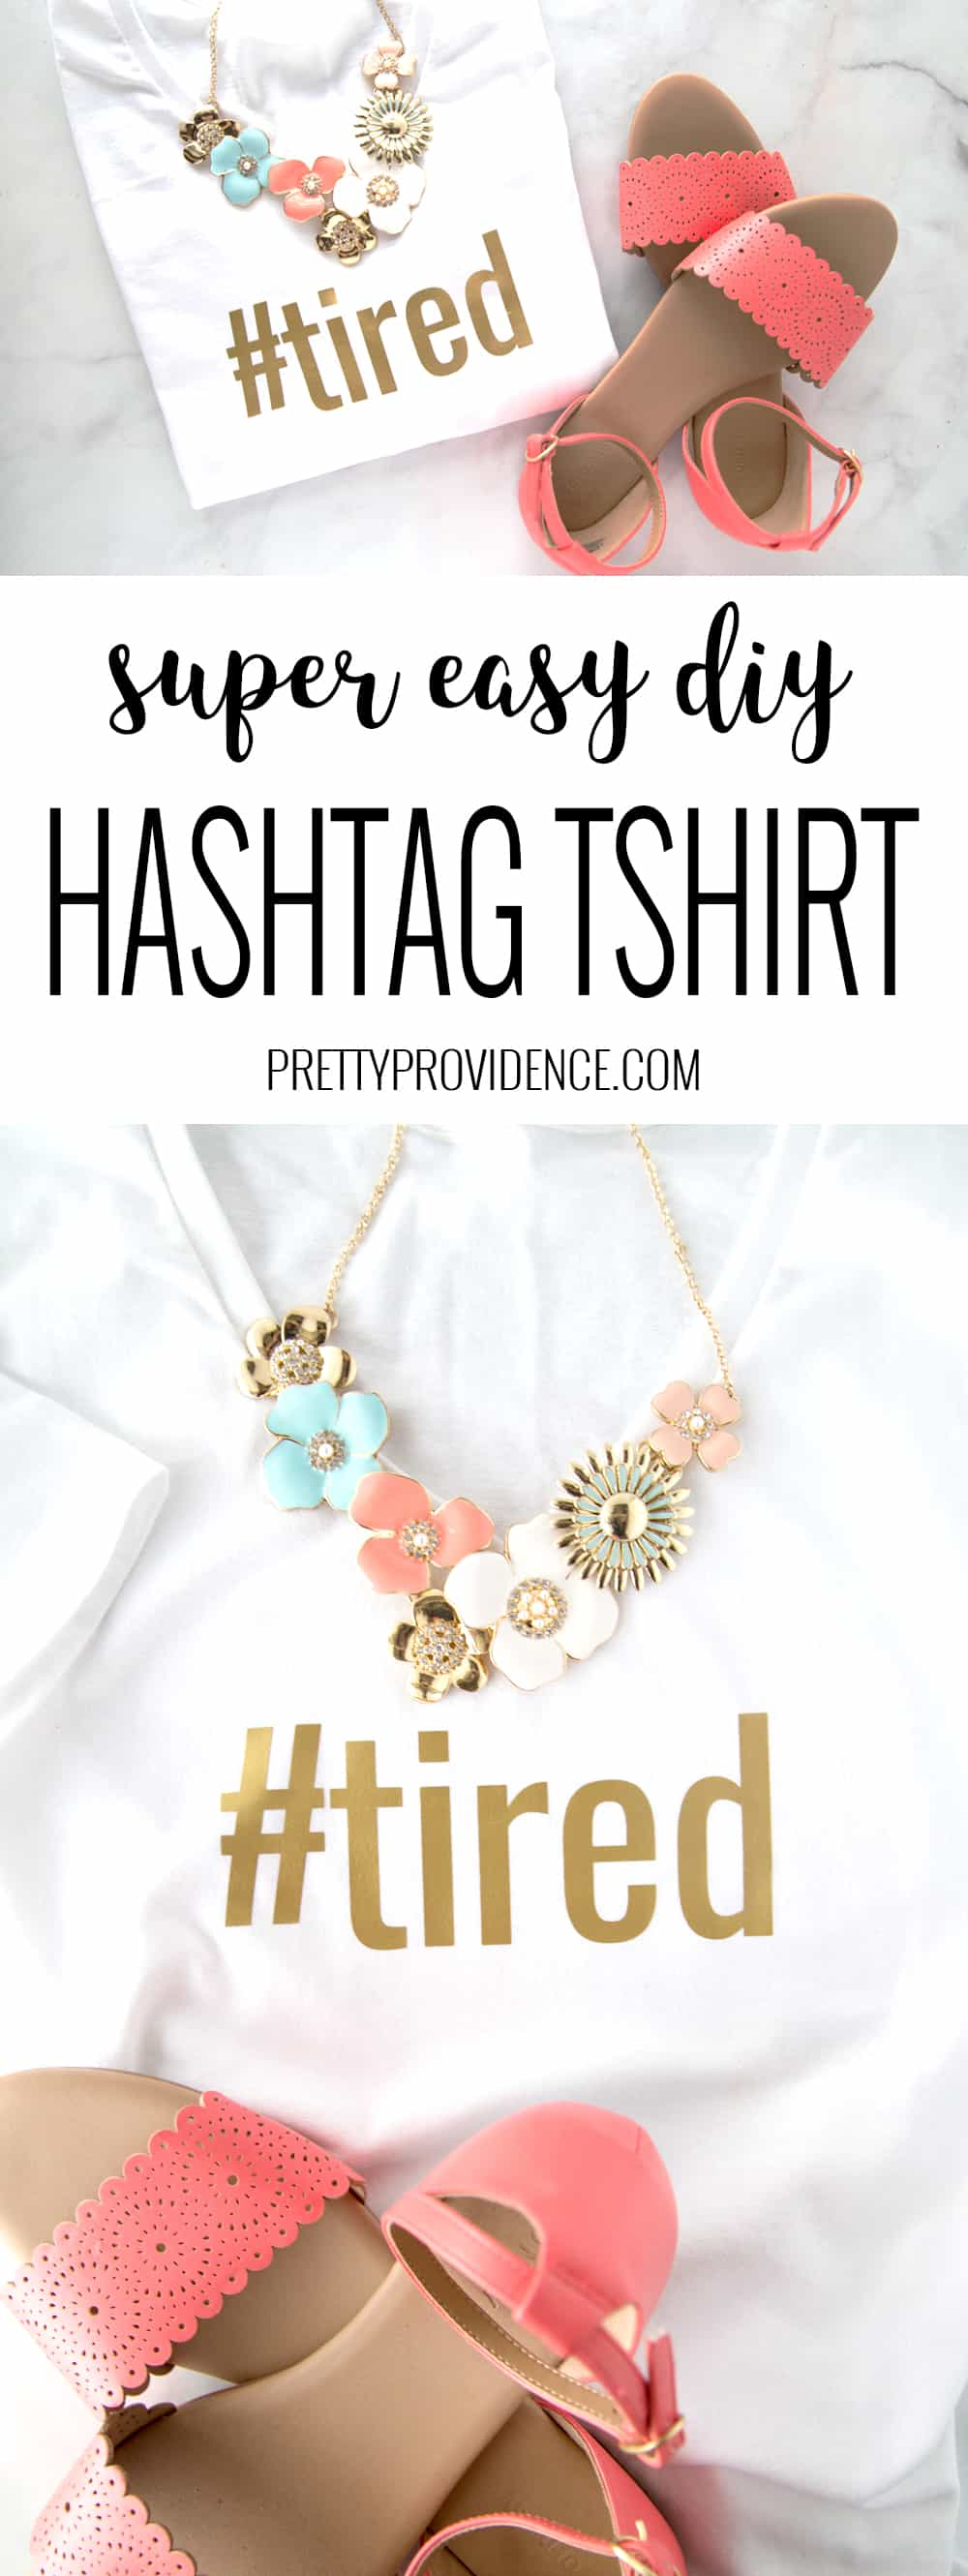 How fun are these easy hashtag DIY T Shirts?! I love them so much! The best part is that you can totally customize them to fit anybody so they make the perfect gift!